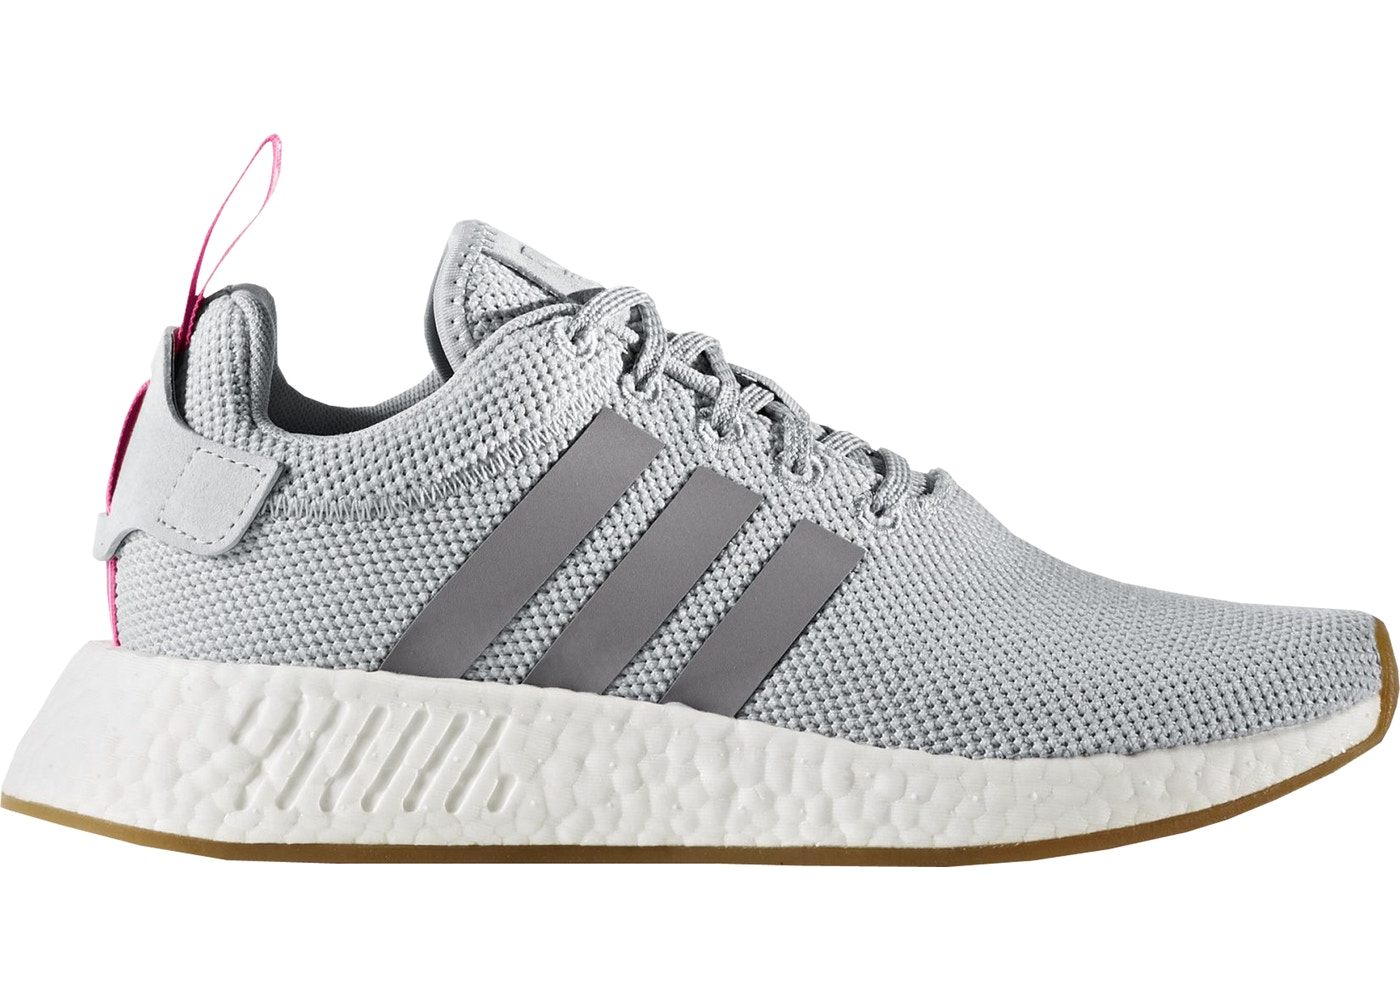 fdac8b3d8133e Sell. or Ask. Size  8W. View All Bids. adidas NMD R2 Grey Shock Pink ...